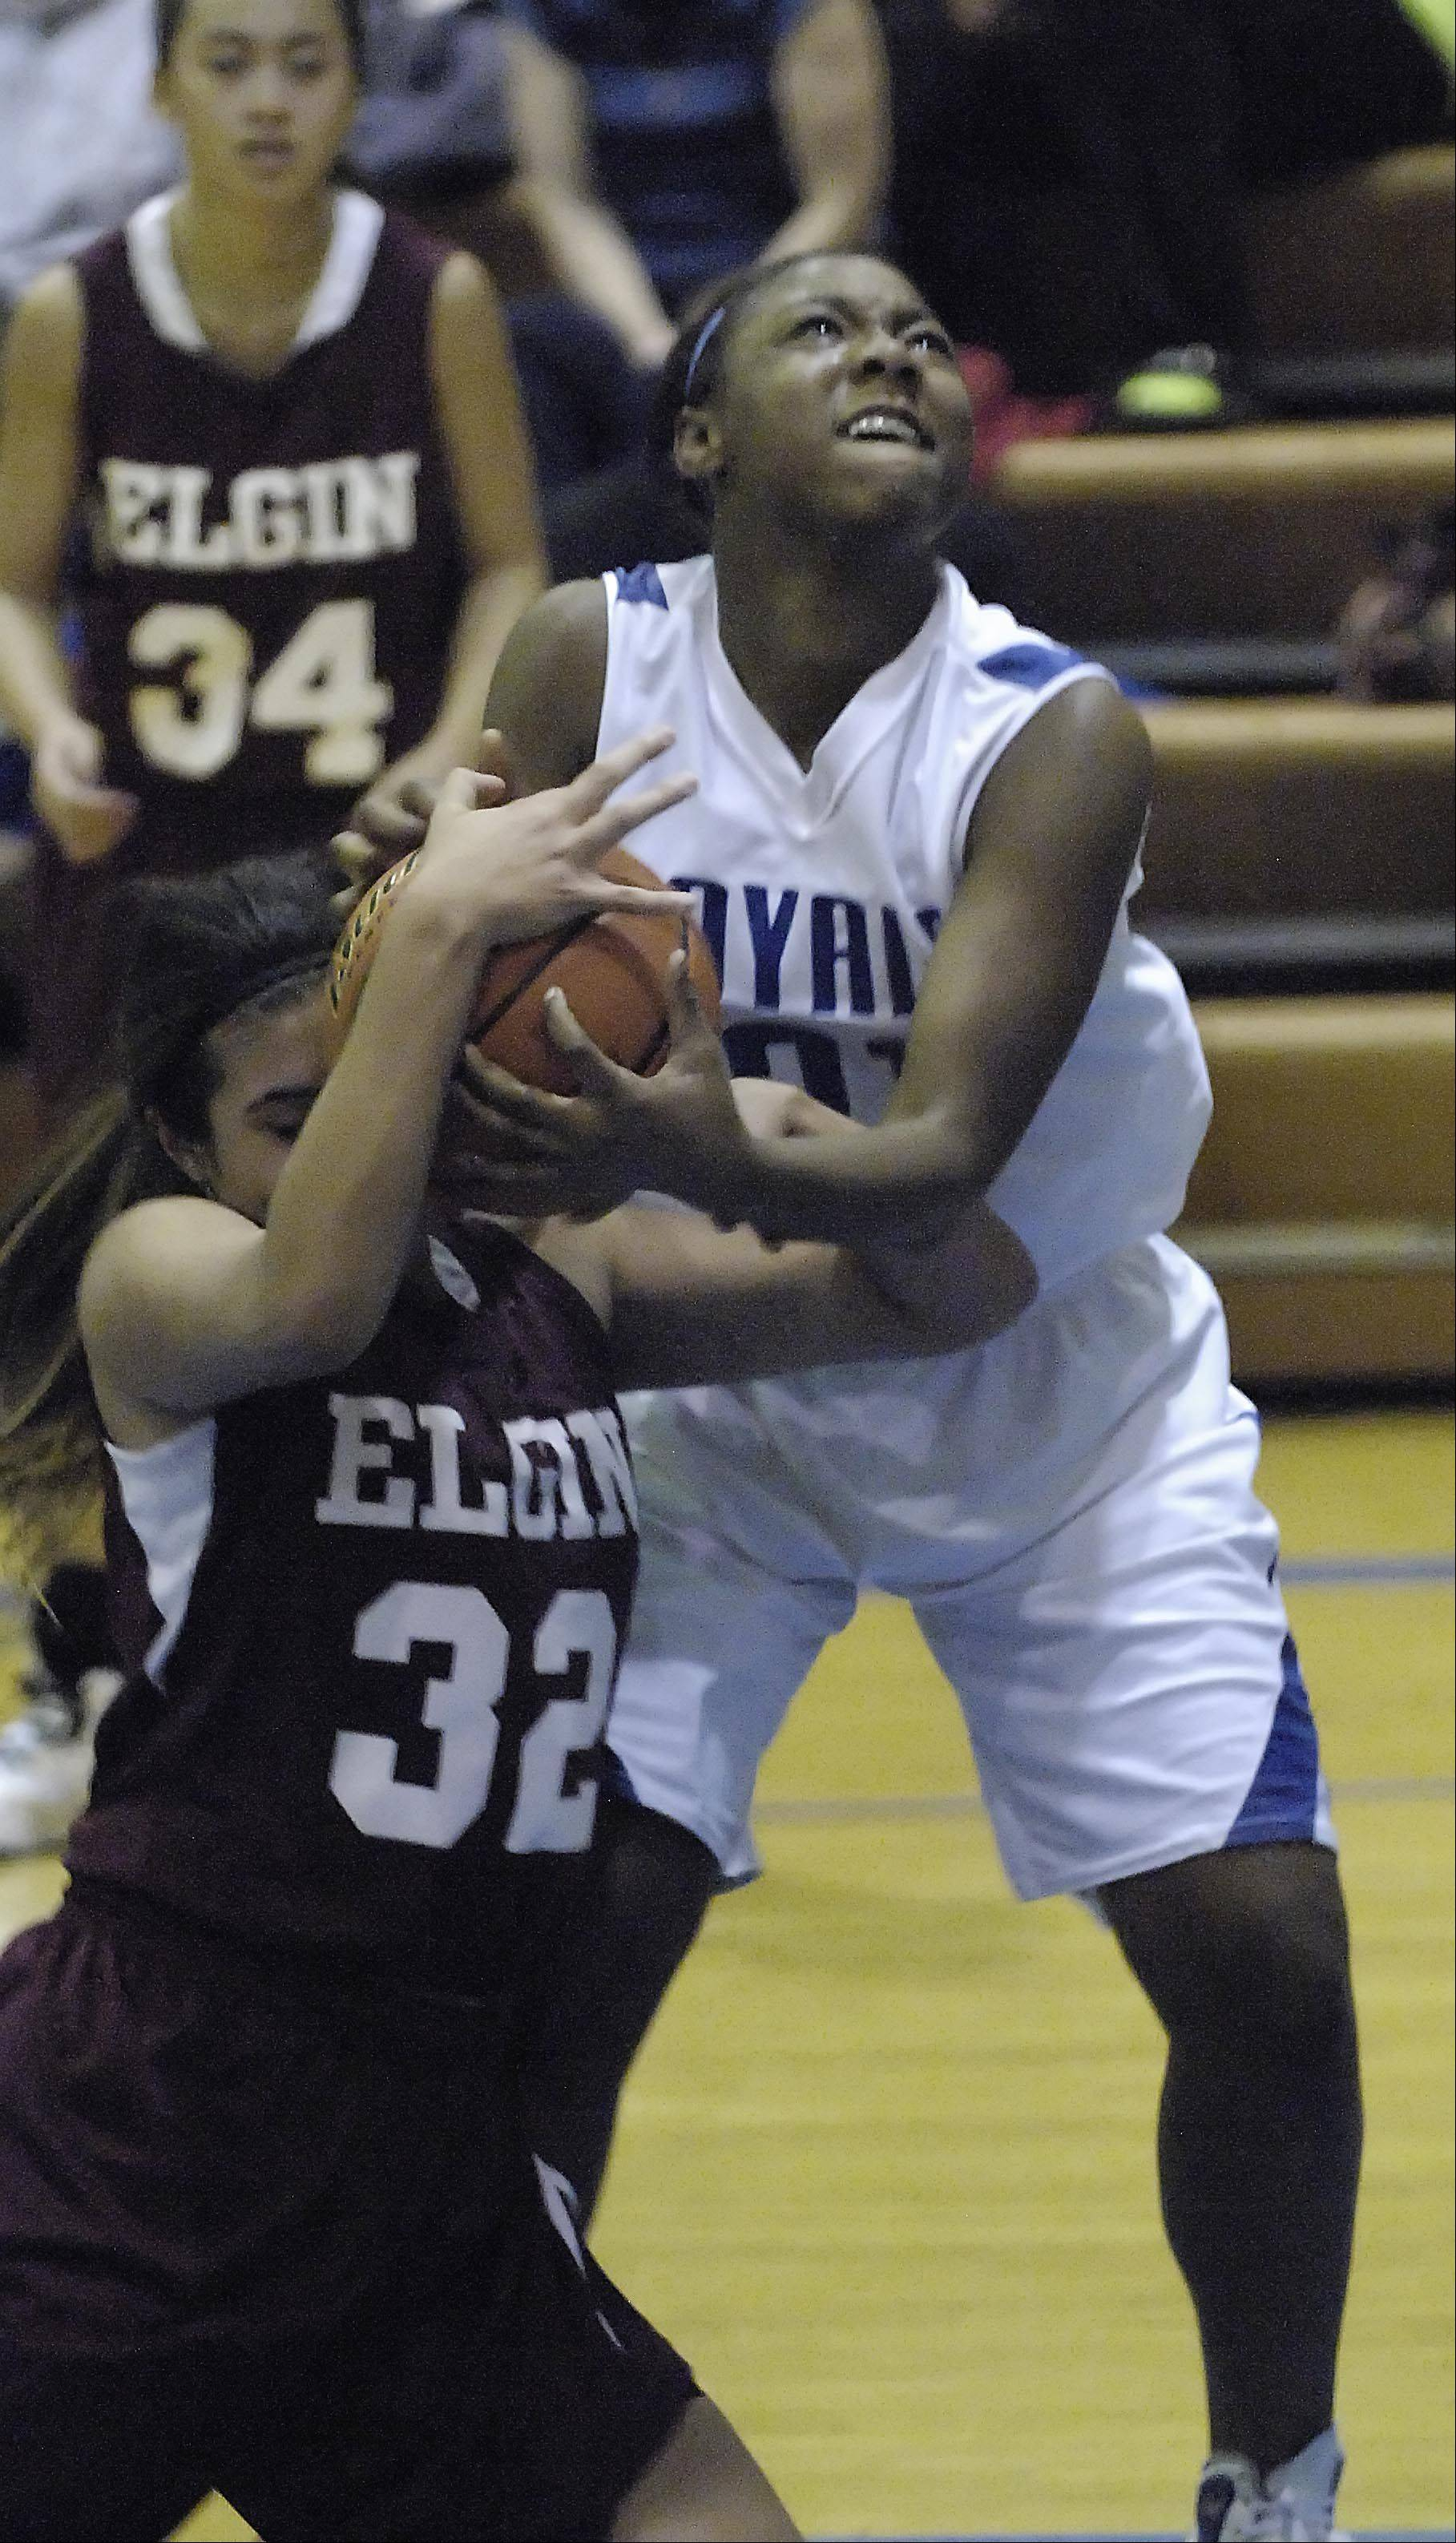 Images from the Elgin vs. Larkin girls basketball game Tuesday, December 4, 2012.